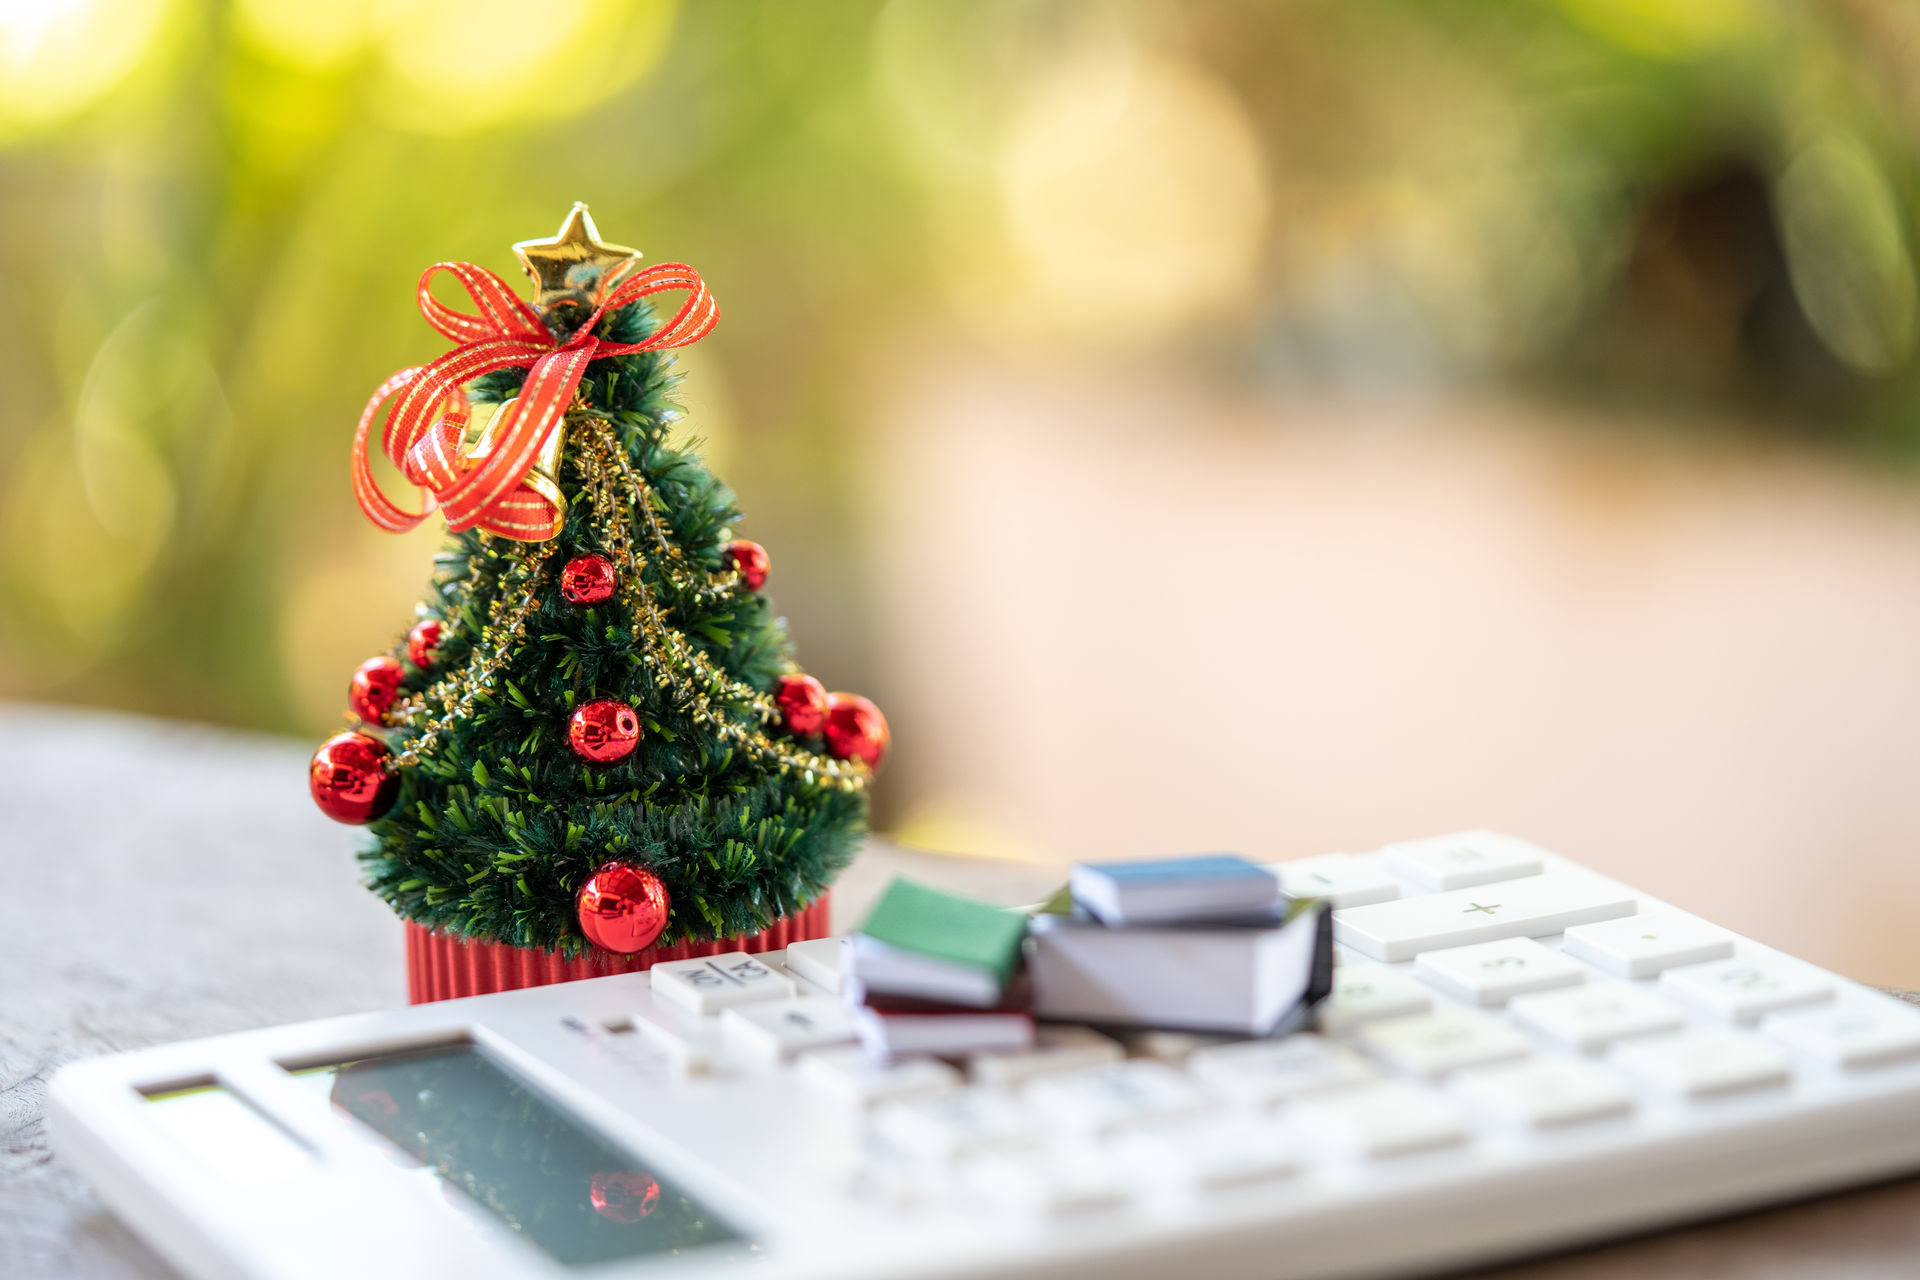 Don't let the tax man ruin your Christmas party